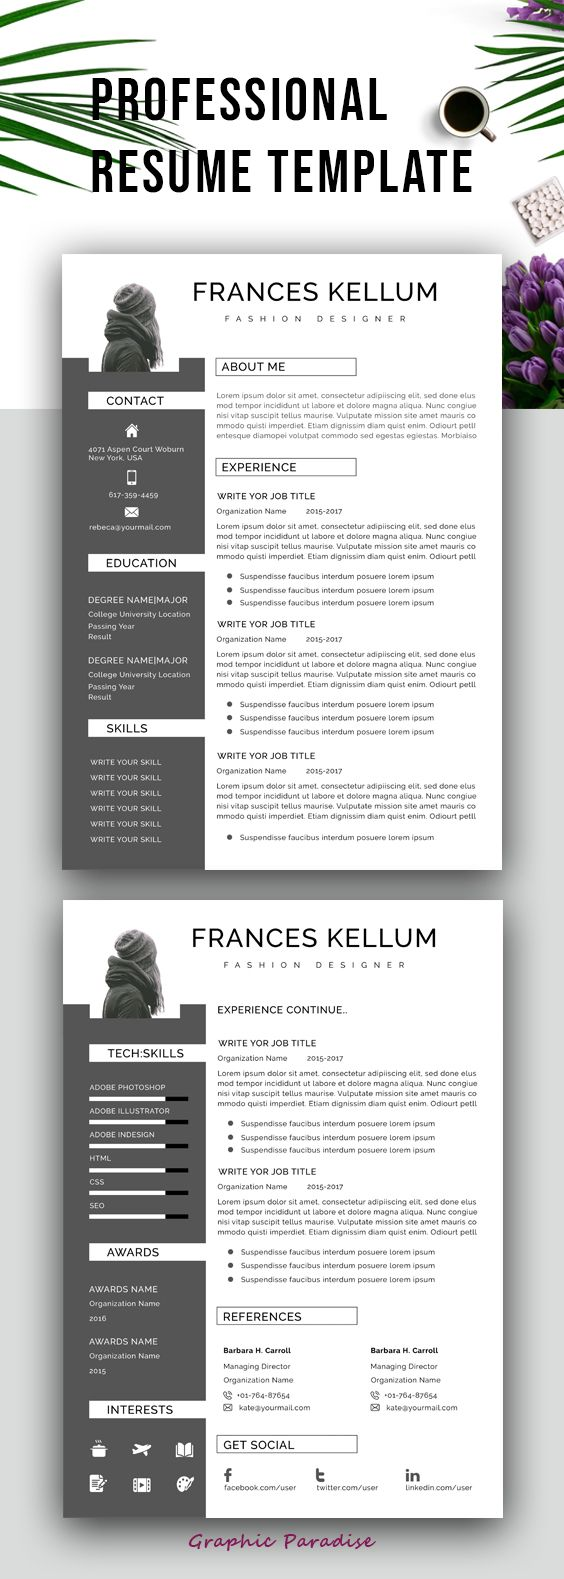 Resume template word, Professional resume template instant download, Resume writing, CV, Curriculum vitae, Resume template free,Cover letter #resume #resumetemplate #cv #cvtemplate